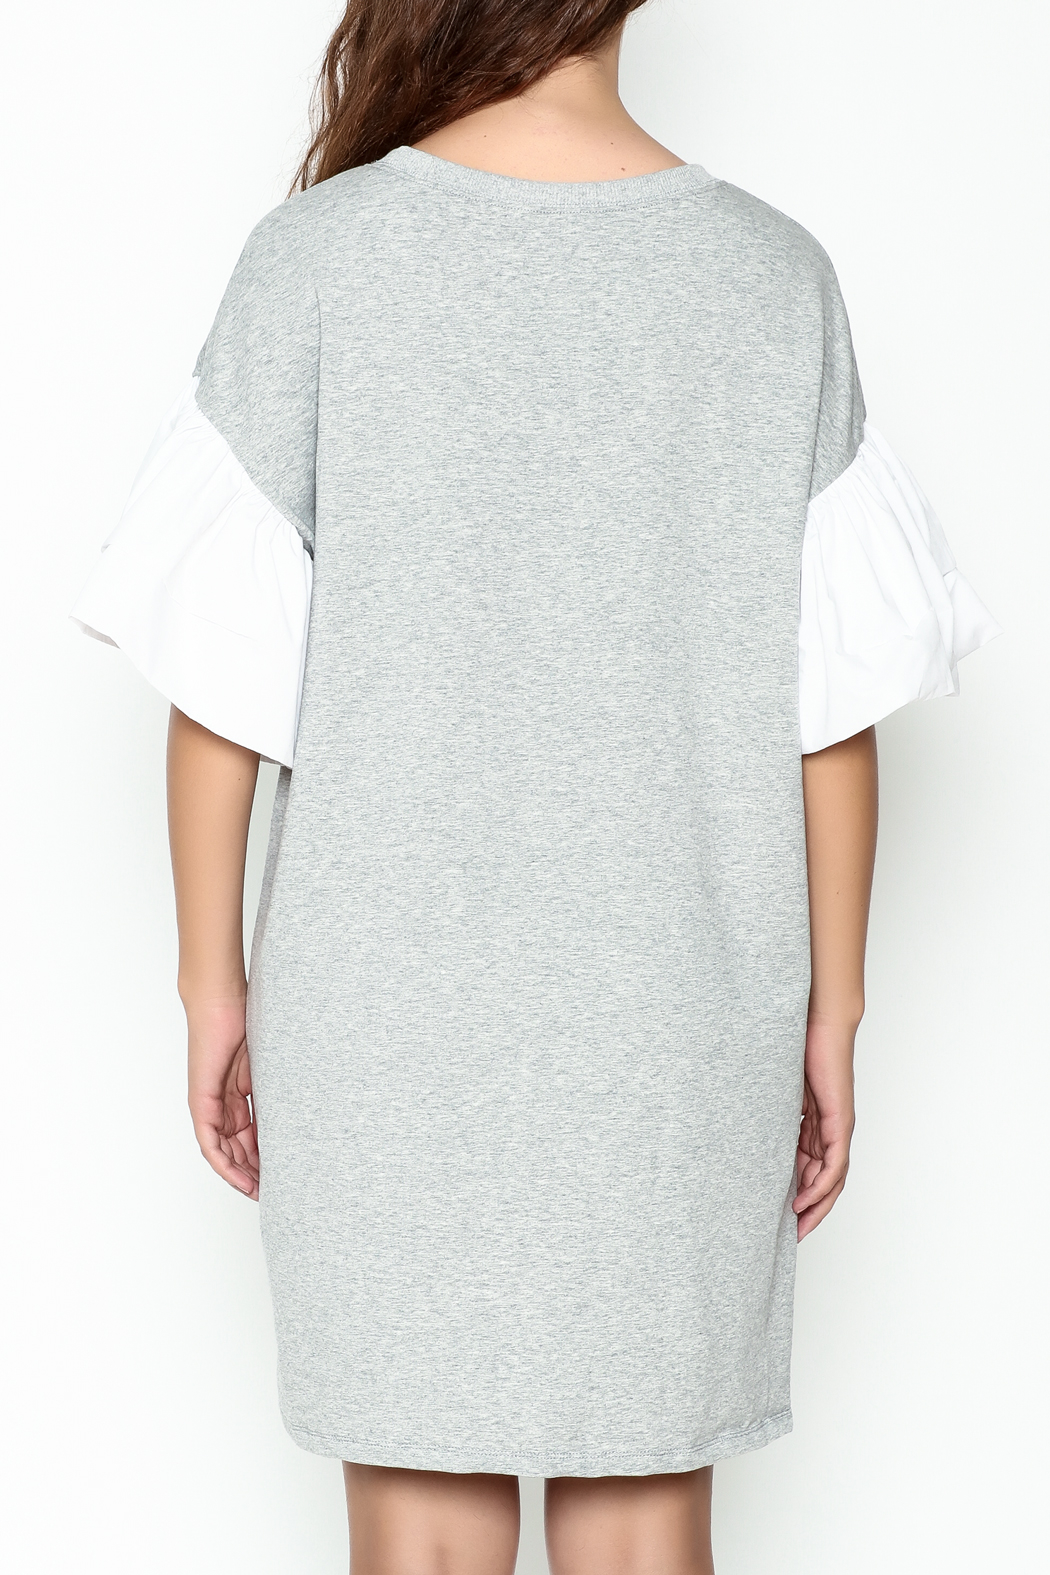 cq by cq Contrast Sleeve Shift Dress - Back Cropped Image